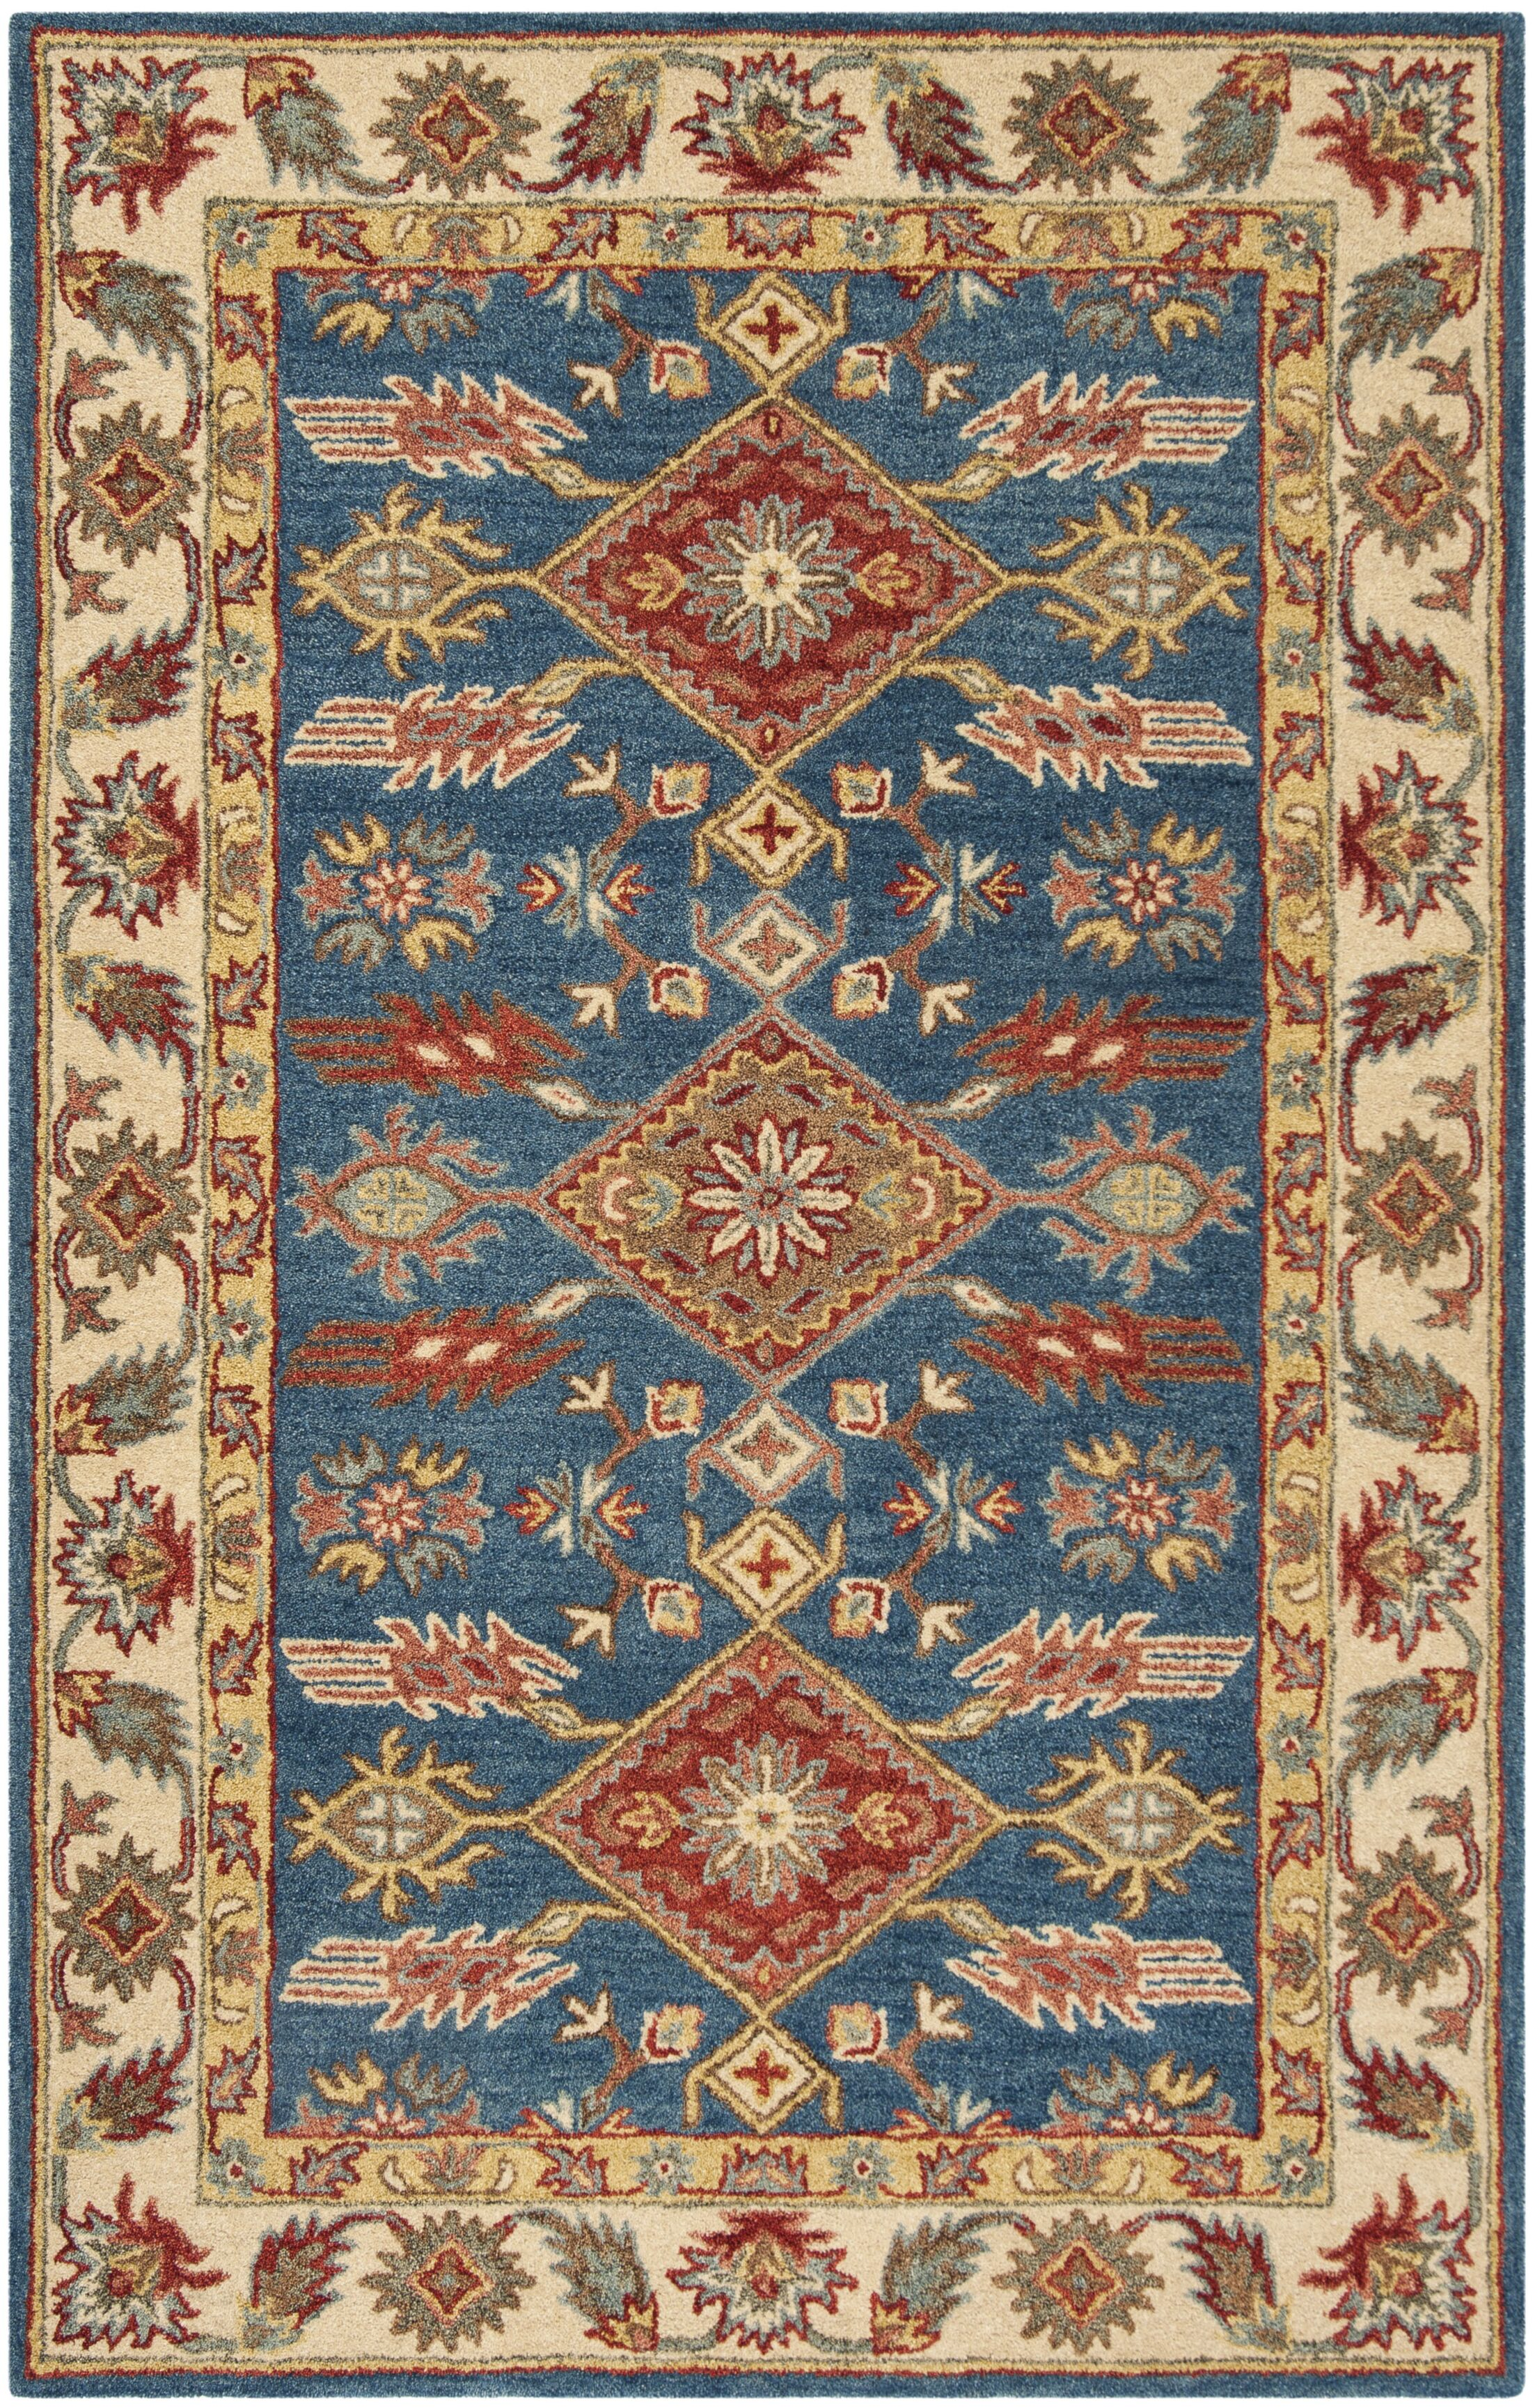 Clymer Antiquity Hand-Tufted Blue/Beige Area Rug Rug Size: Rectangle 6' x 9'